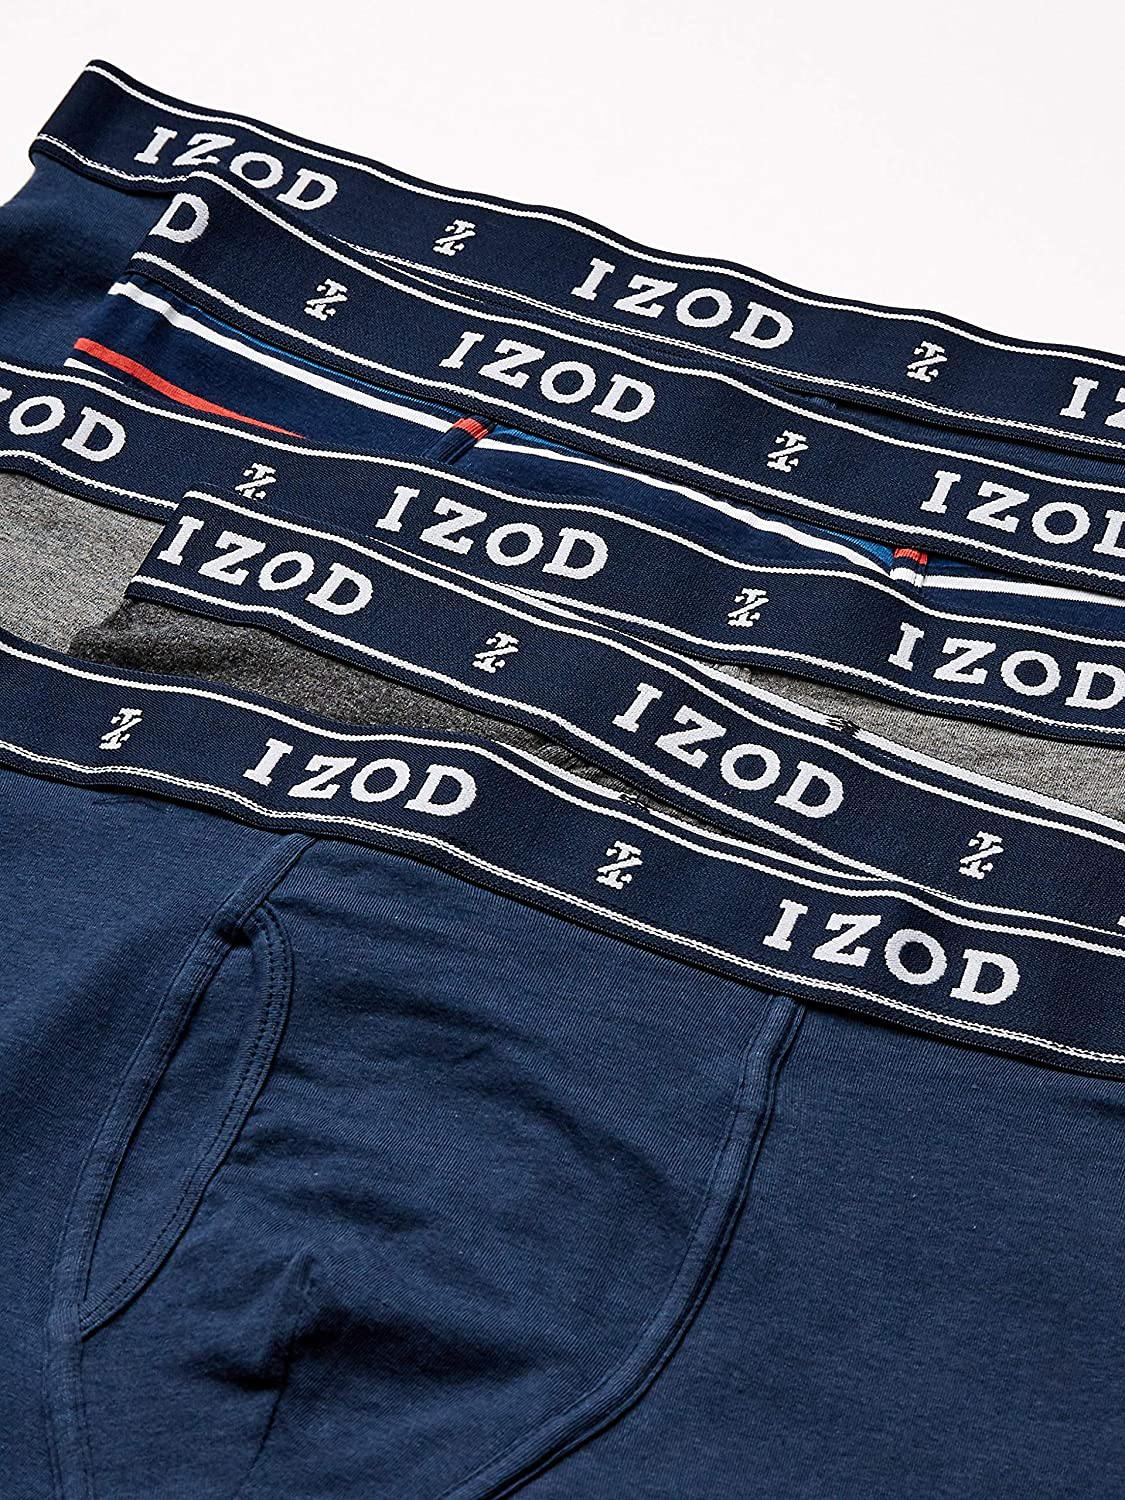 IZOD Men's Underwear – Cotton Stretch Boxer Briefs with Functional Fly (5 Pack)